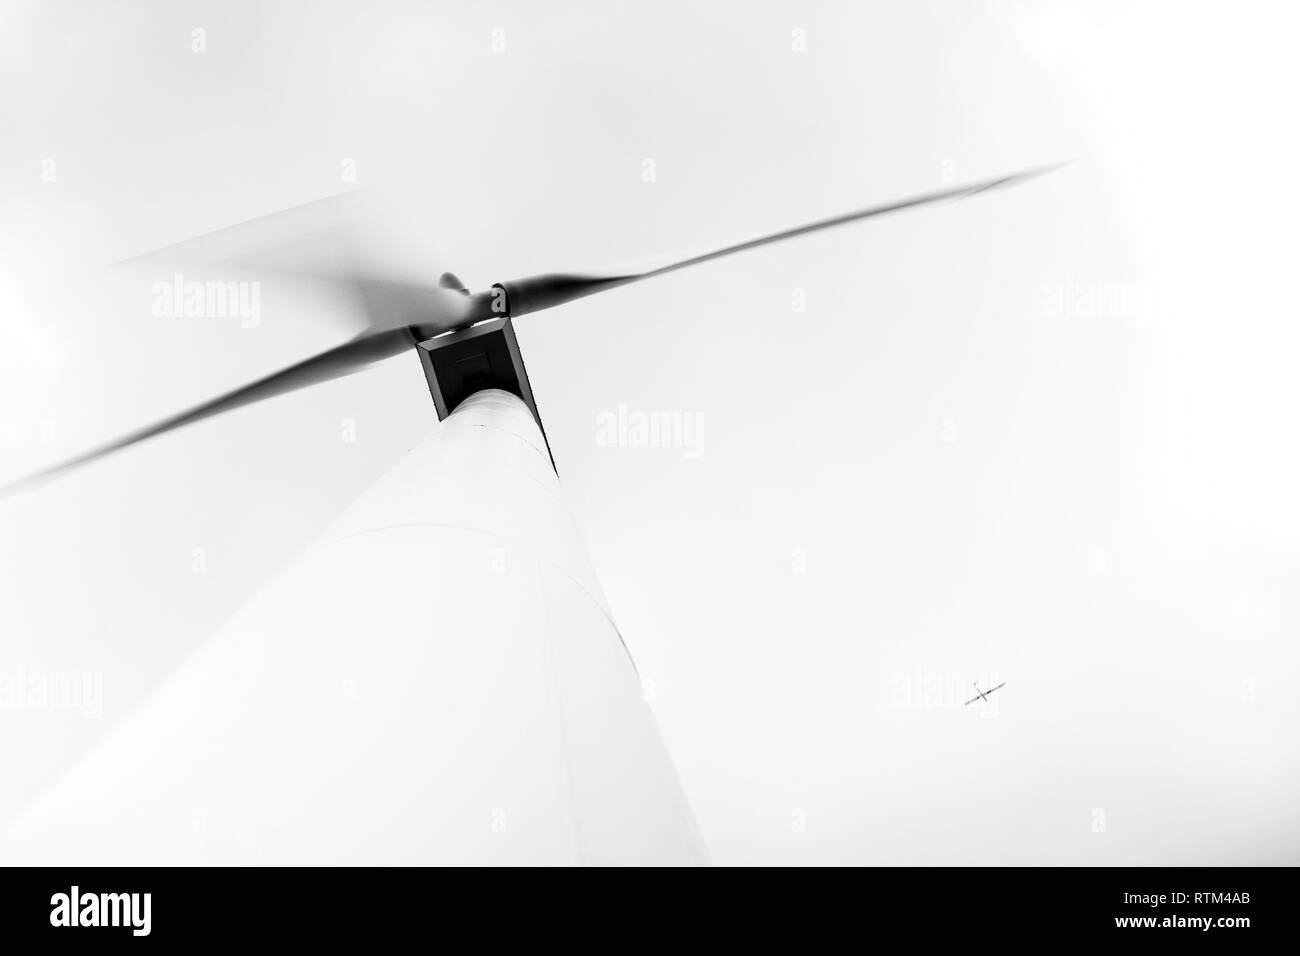 View from below of large electric environmentally friendly wind turbine with aeroplane flying high in the sky - unusual angle - Stock Image